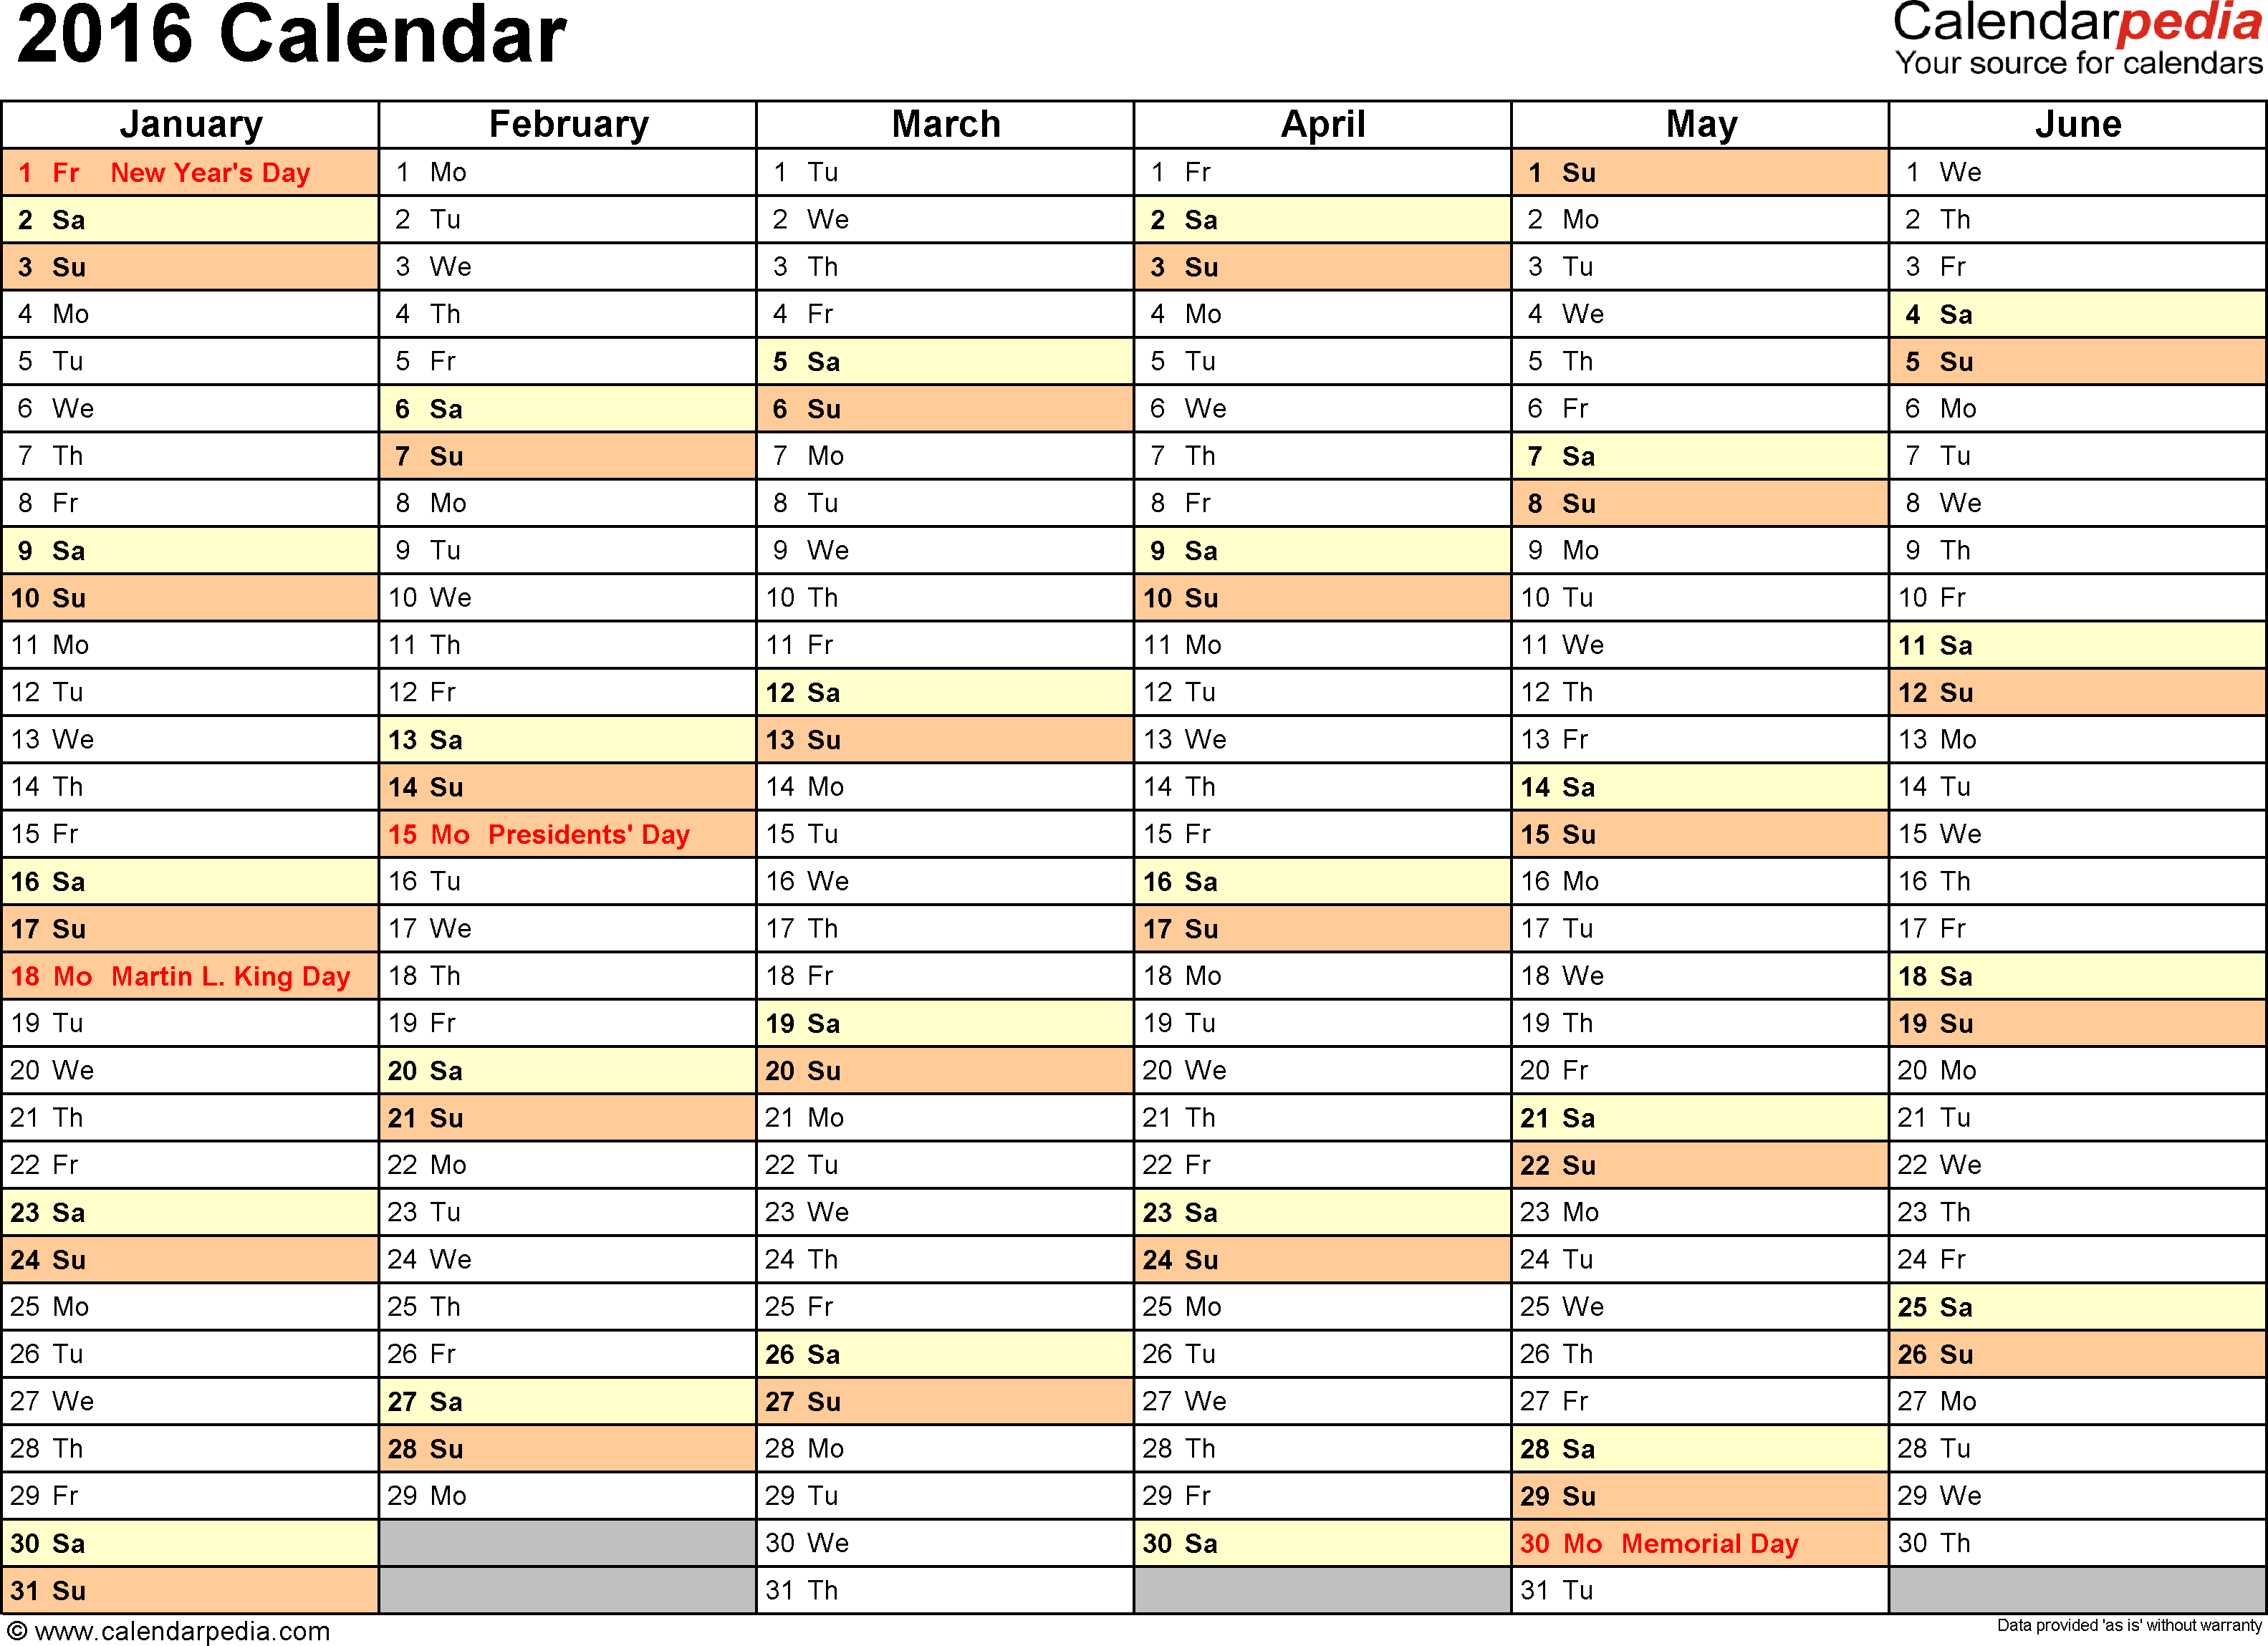 Ediblewildsus  Stunning  Calendar  Download  Free Printable Excel Templates Xls With Foxy Template   Calendar For Excel Months Horizontally  Pages Landscape Orientation With Beautiful Excel Time Also Excel Is Not Blank In Addition Synonyms For Excel And Calculate Change In Excel As Well As How To Merge Text In Excel Additionally Random Number Generator In Excel From Calendarpediacom With Ediblewildsus  Foxy  Calendar  Download  Free Printable Excel Templates Xls With Beautiful Template   Calendar For Excel Months Horizontally  Pages Landscape Orientation And Stunning Excel Time Also Excel Is Not Blank In Addition Synonyms For Excel From Calendarpediacom